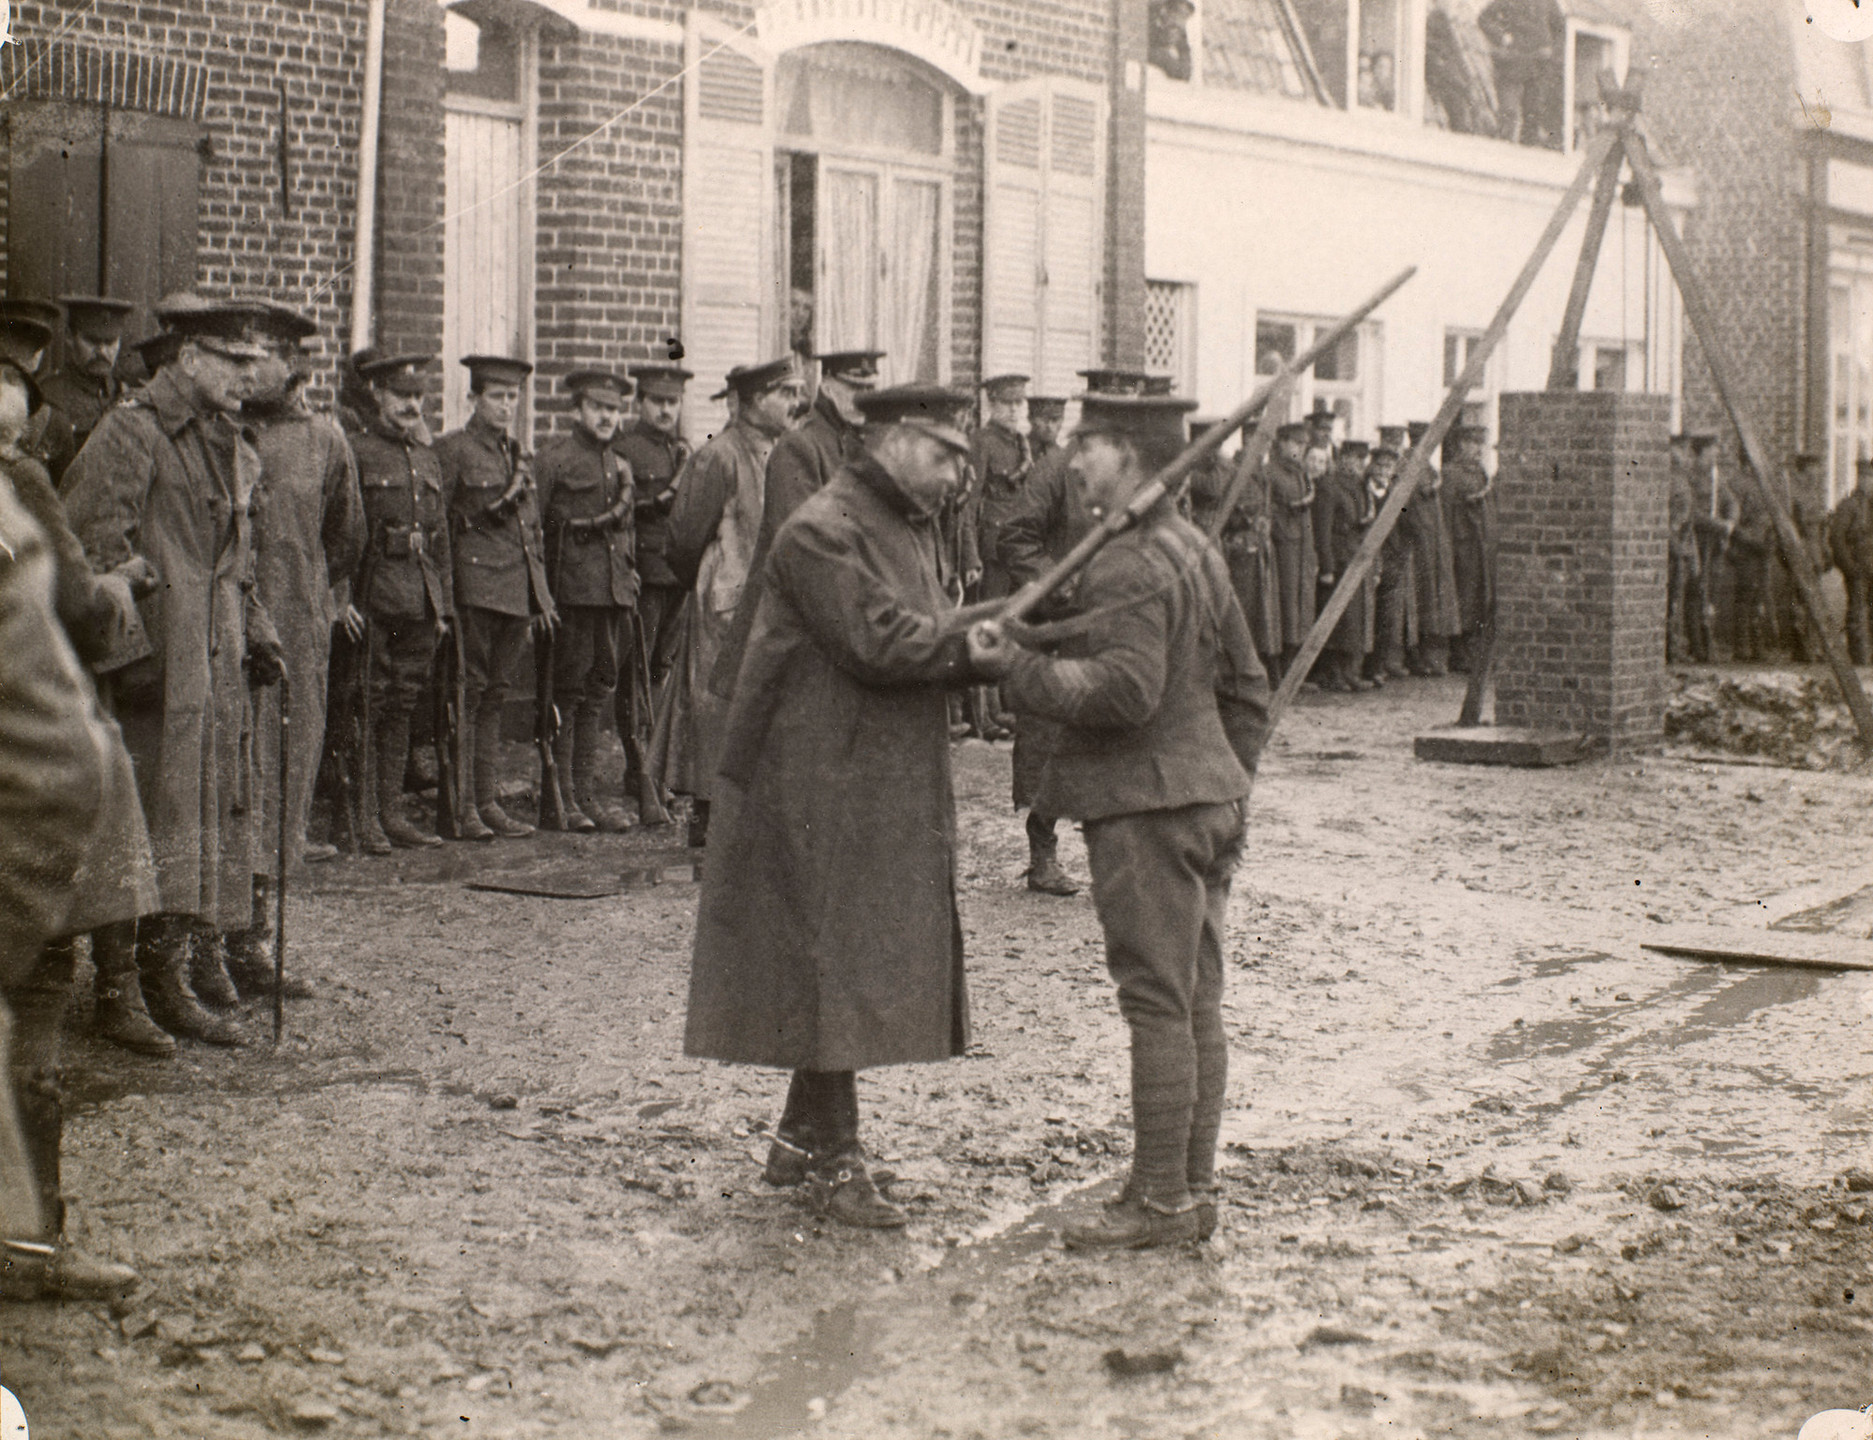 King George V  in uniform and coat pinning a medal to the chest of a Sergeant from the 1st Division. The Sergeant holds a rifle over his left shoulder. The action takes place on a muddy street lined with buildings. A line of soldiers stand in the background.